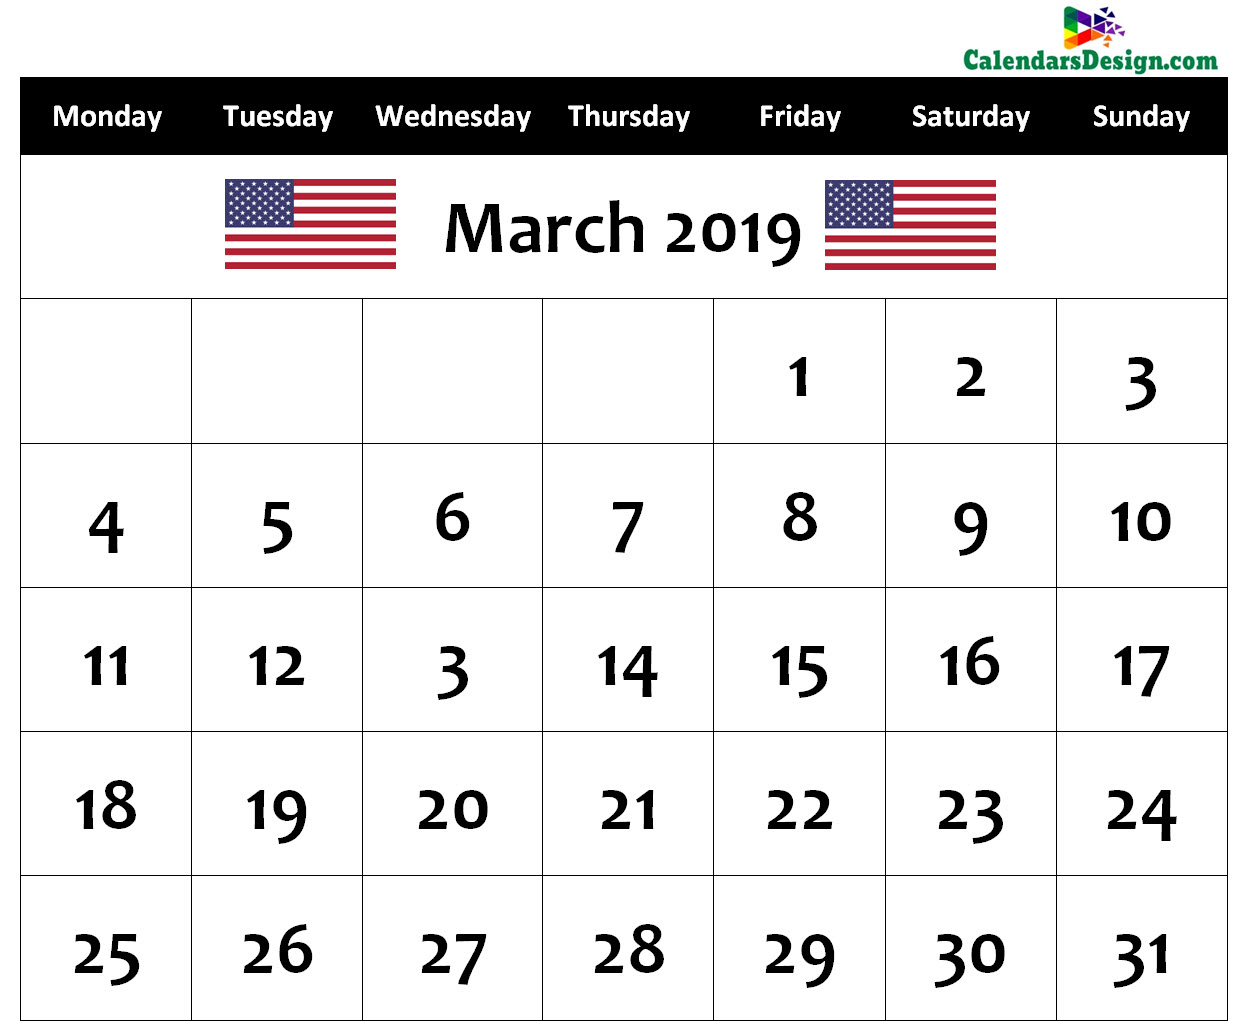 Calendar for March 2019 US